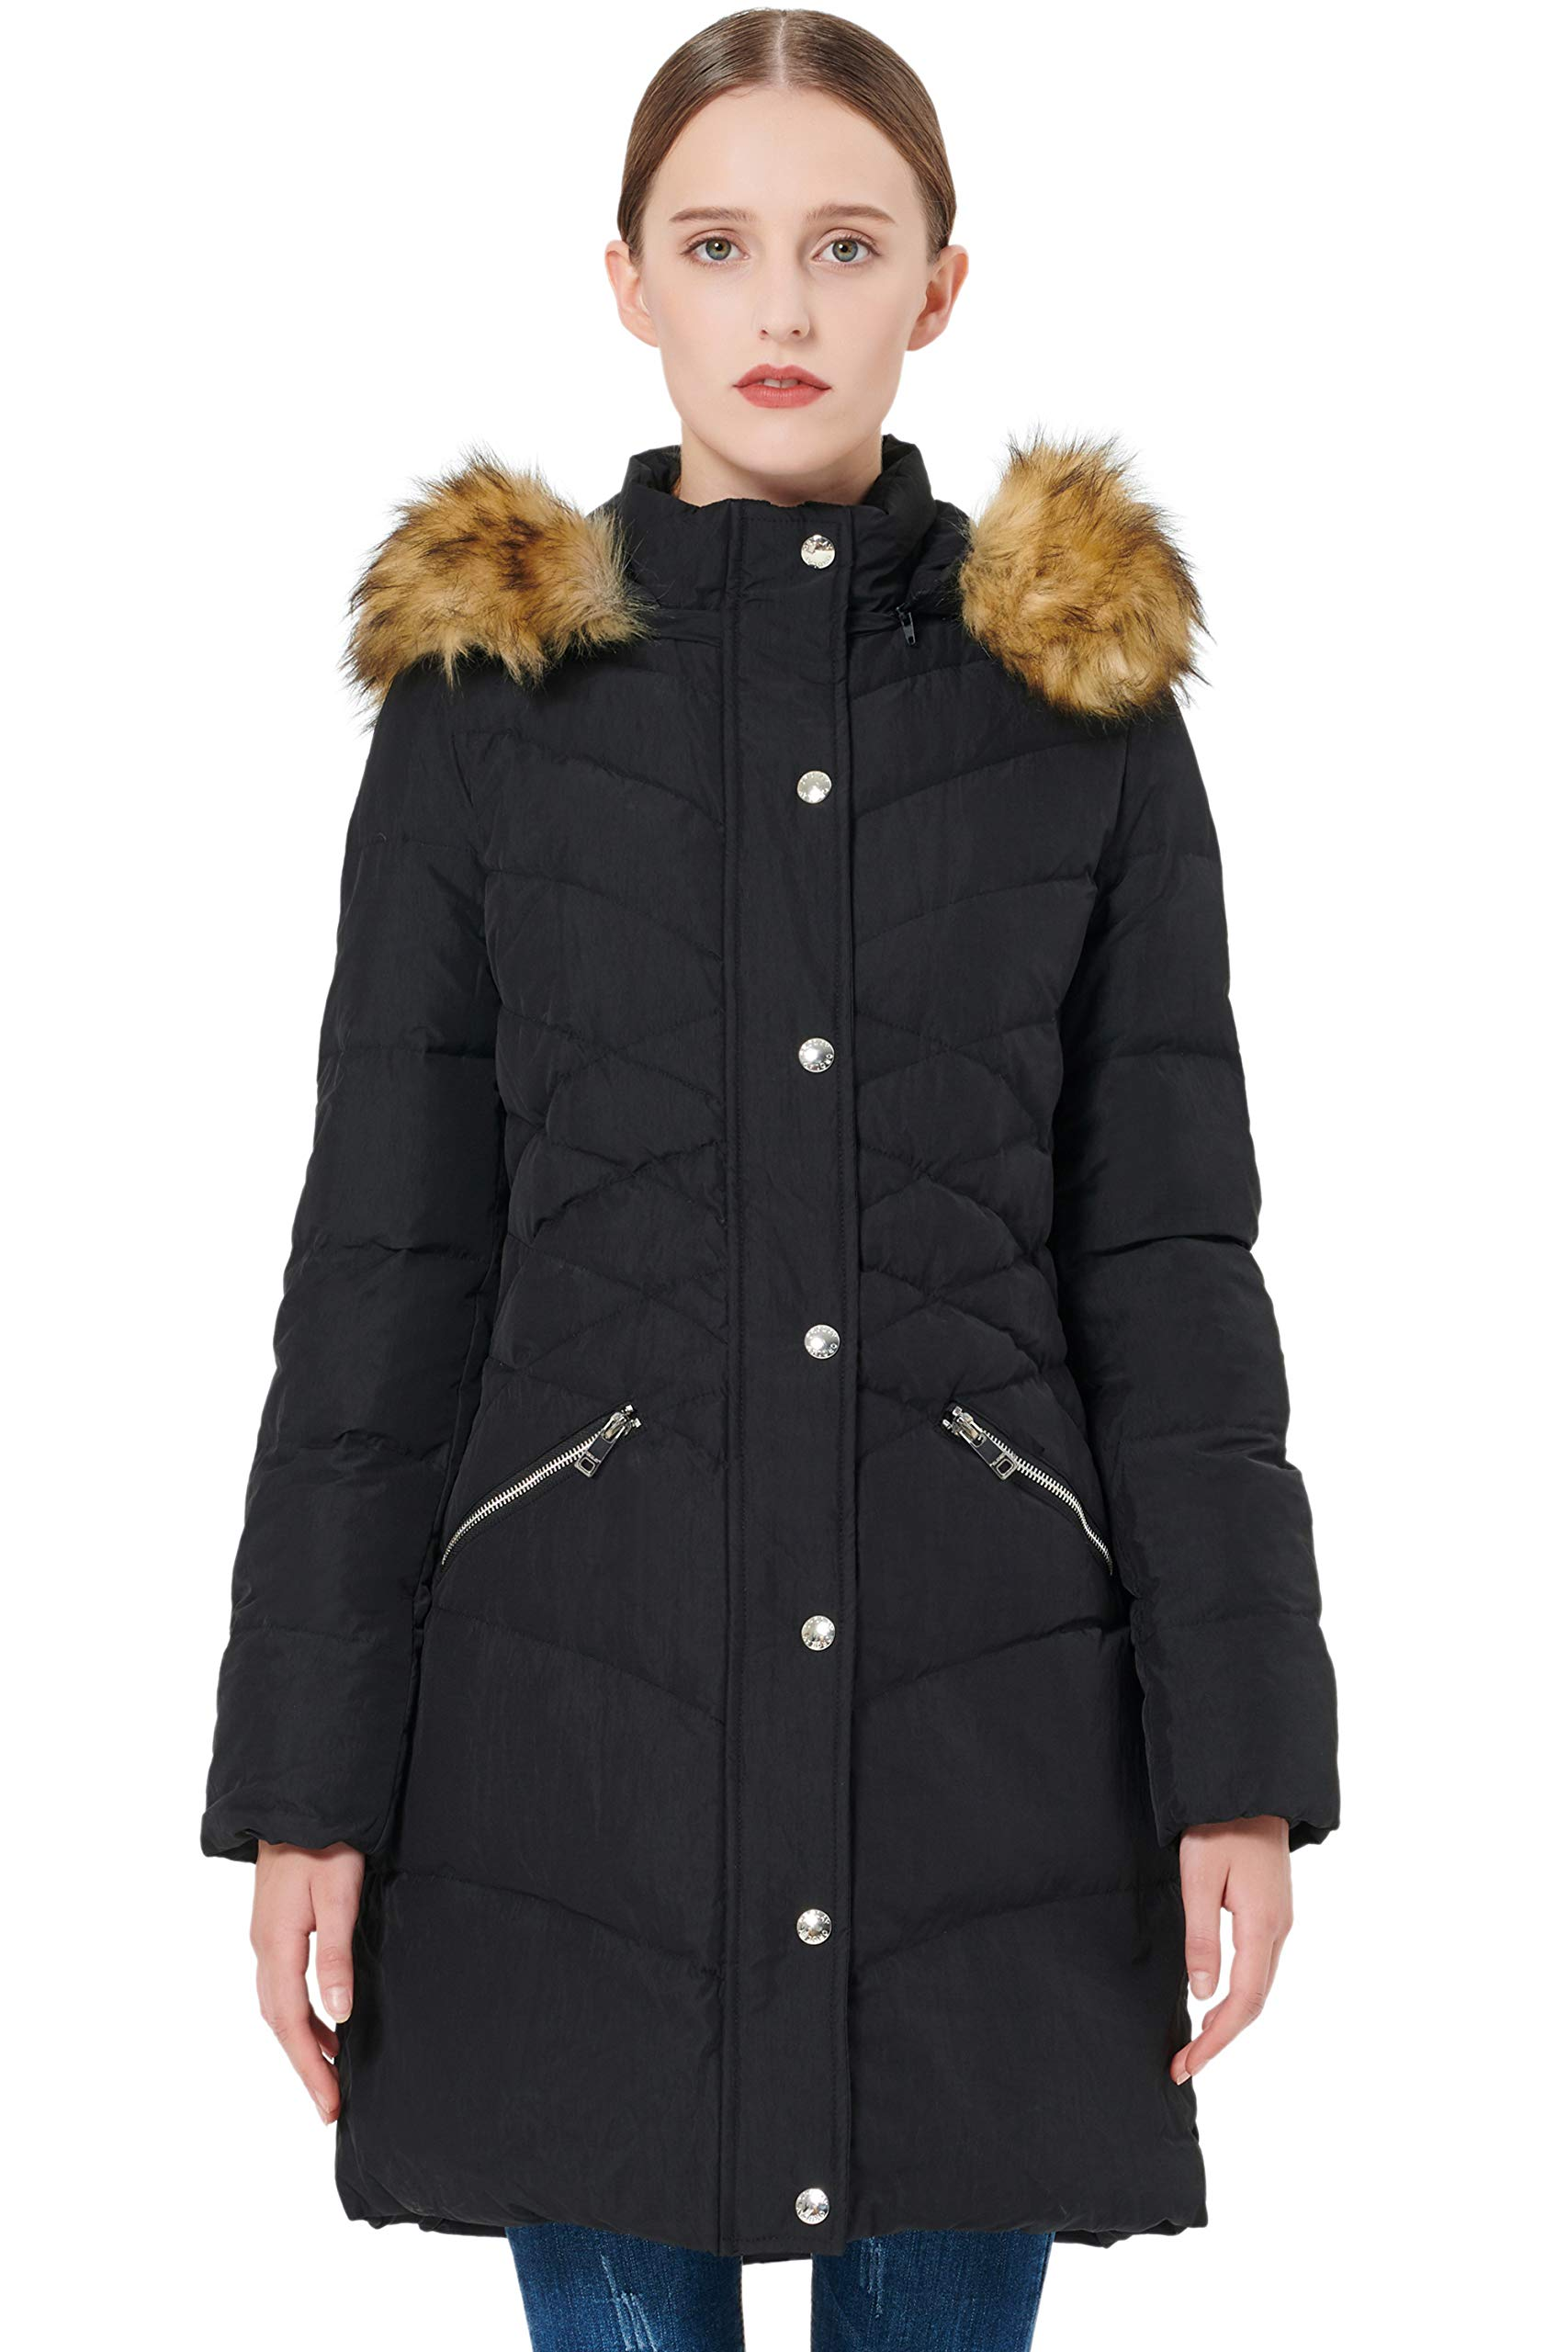 Orolay Women's Thickened Down Jacket Puffer Coat with Hood